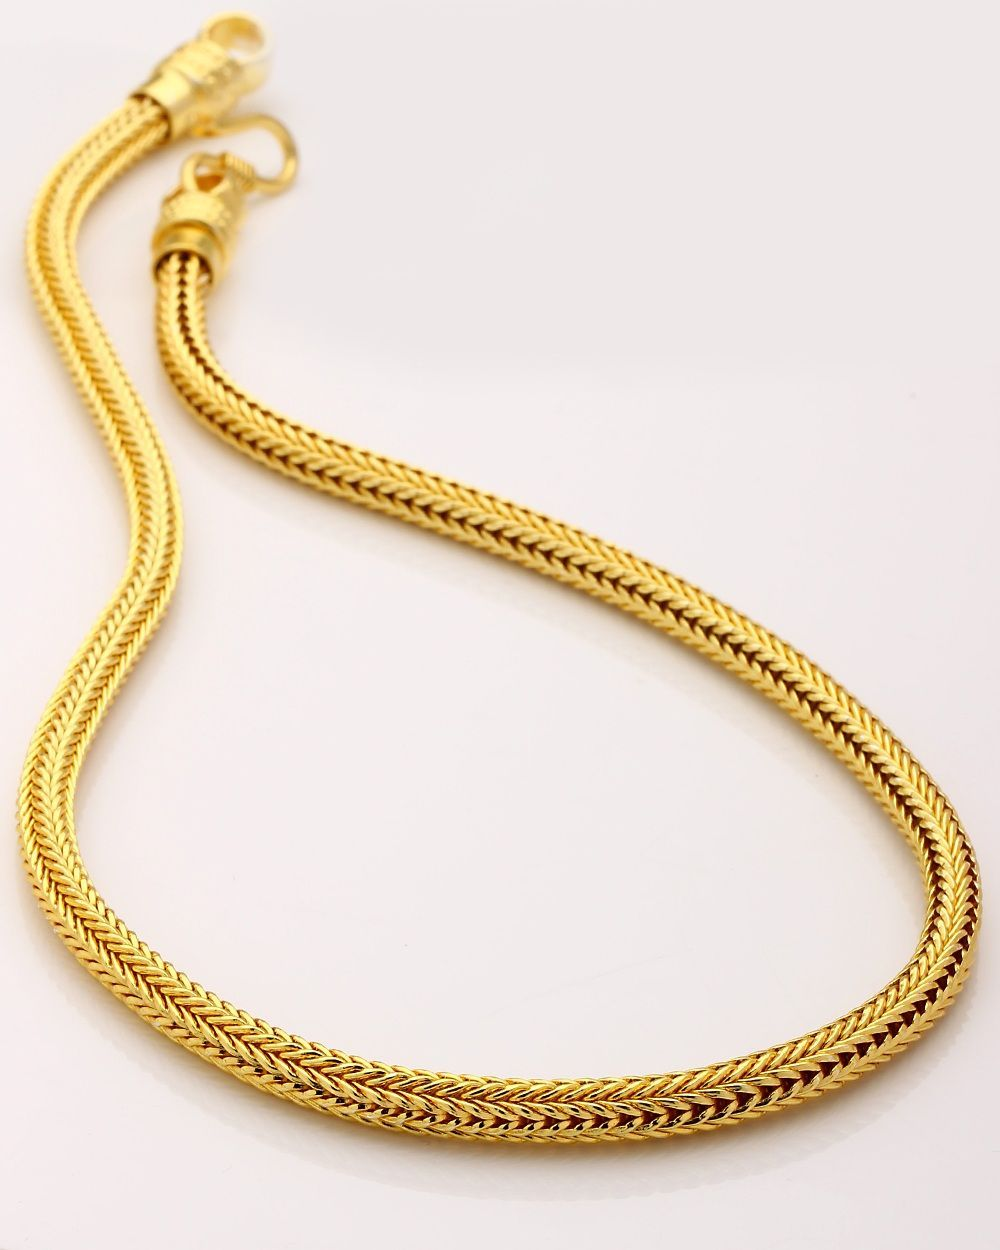 10 Exhilarating A Gold Chain For Men Makes The Perfect Gift Ideas Gold Chains For Men Gold Chain Design Chains For Men